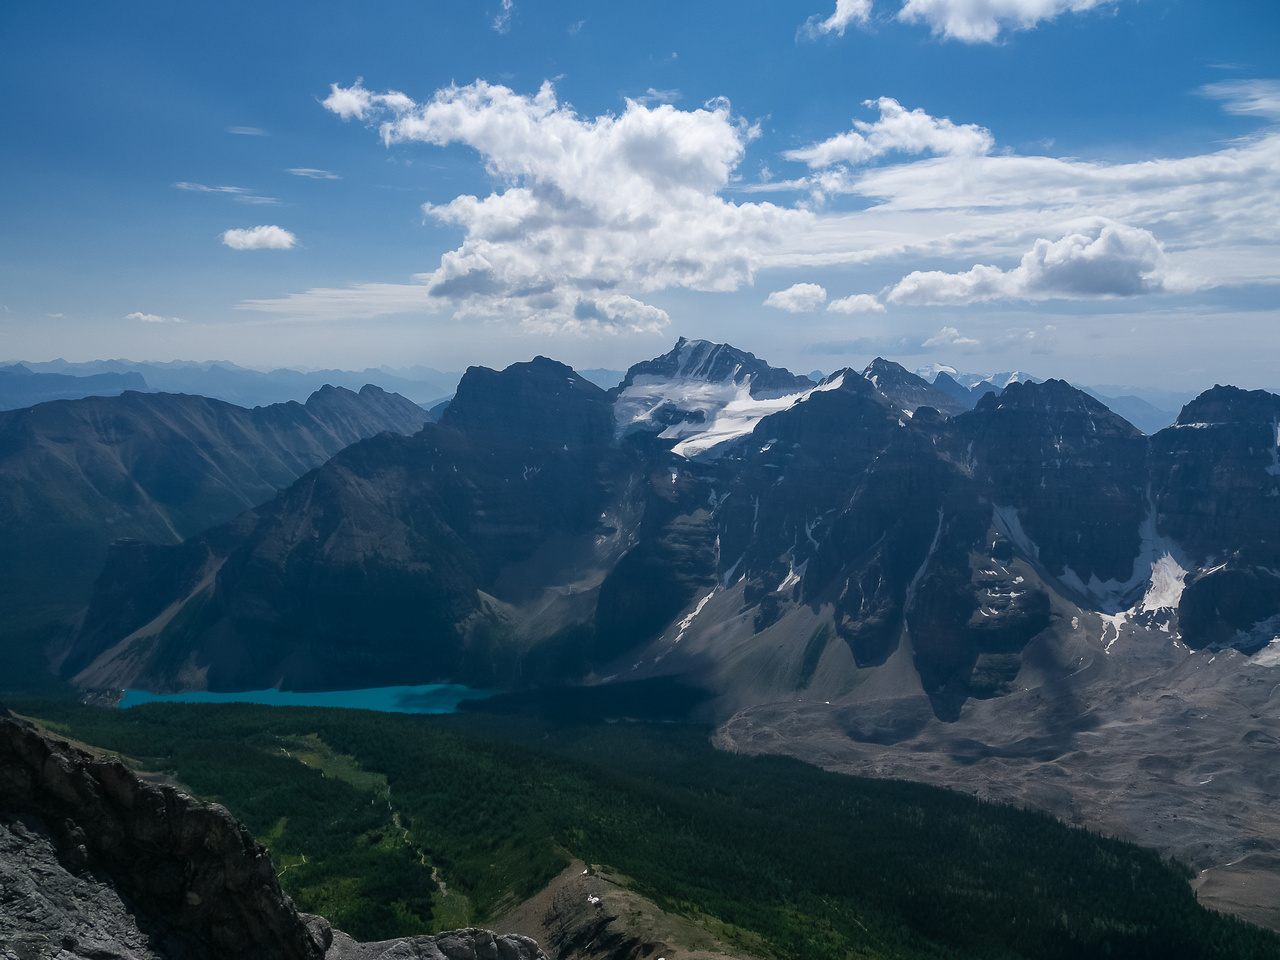 Looking over Moraine Lake to Panorama Ridge, Babel, Fay, Little, Bowlen and Tonsa.